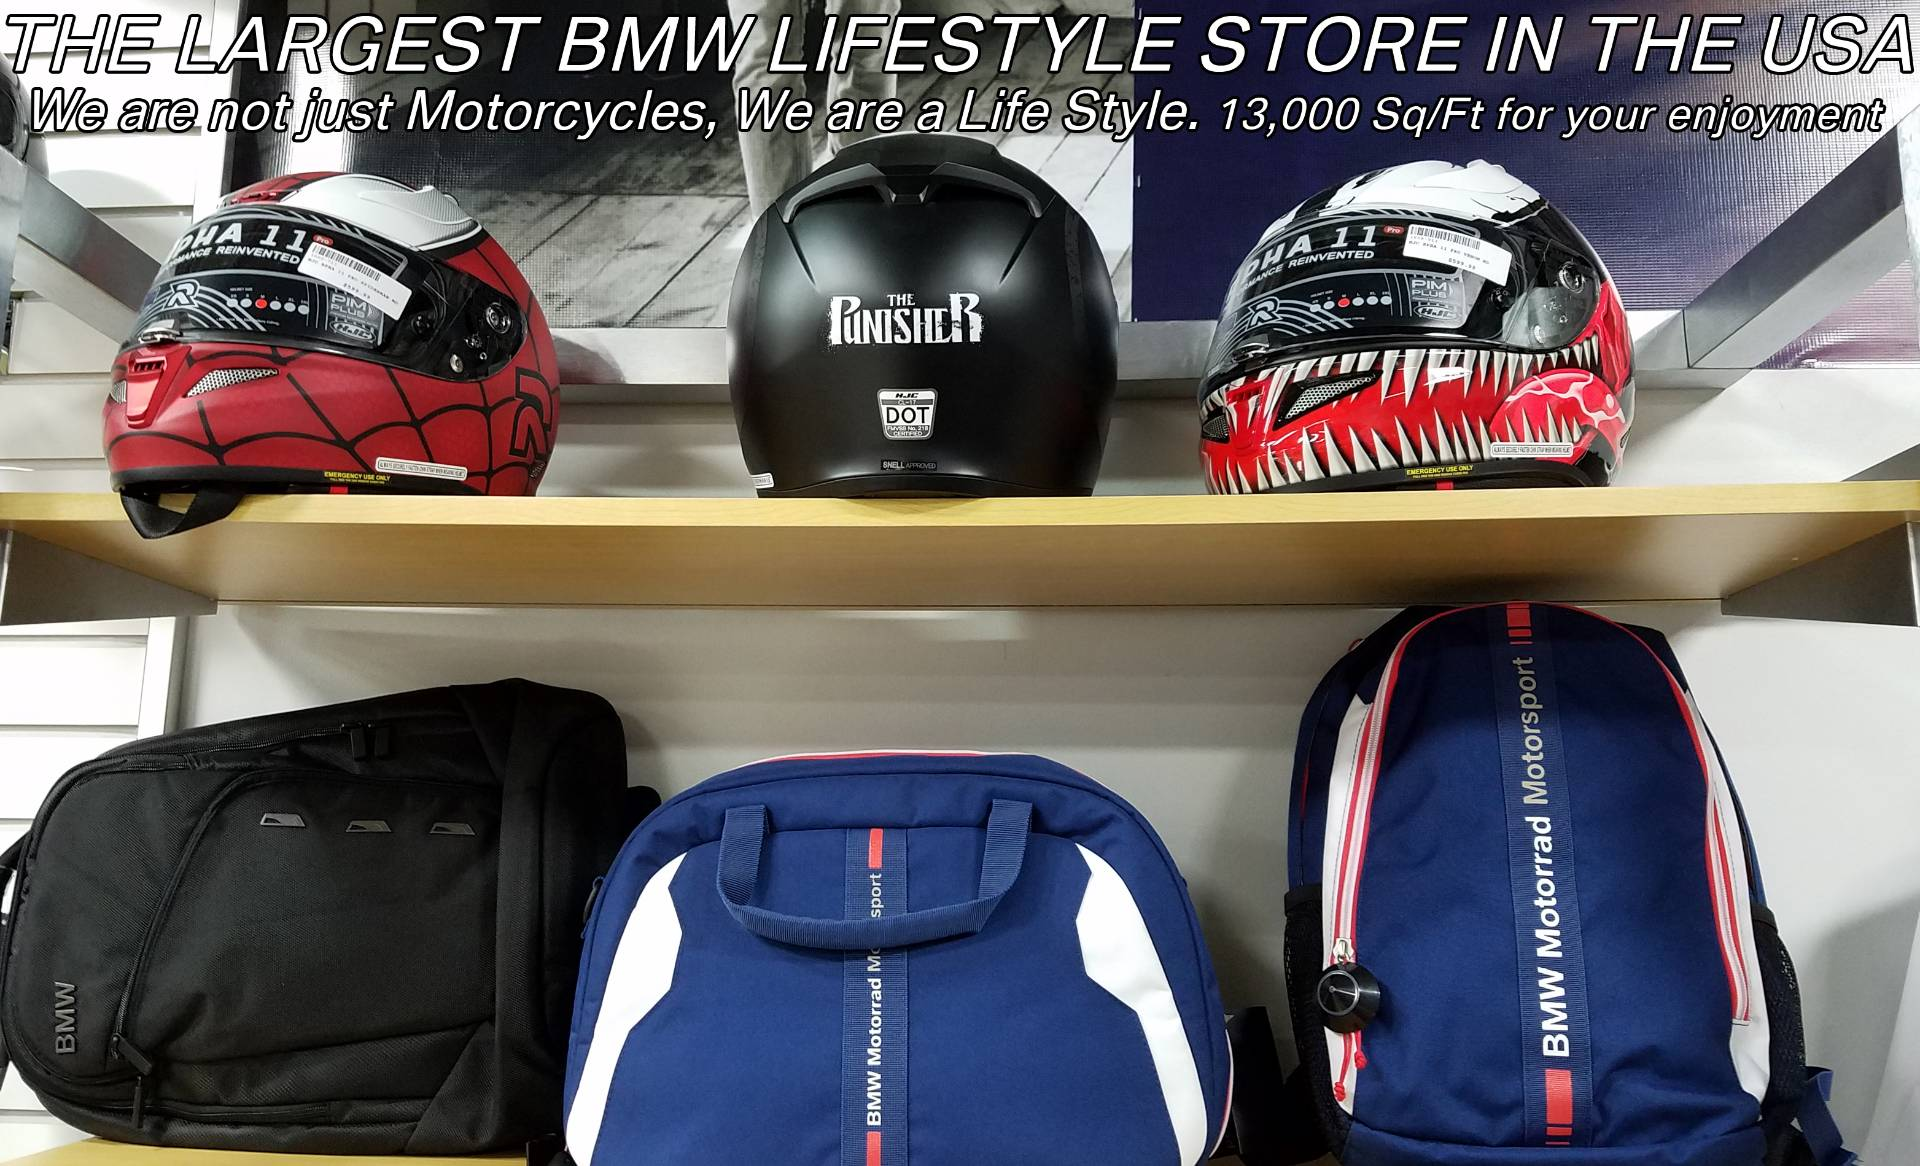 New 2019 BMW G 310 GS for sale, BMW G 310GS for sale, BMW Motorcycle GS, new BMW GS, Spirit of GS, BMW Motorcycles of Miami, Motorcycles of Miami, Motorcycles Miami, New Motorcycles, Used Motorcycles, pre-owned. #BMWMotorcyclesOfMiami #MotorcyclesOfMiami. - Photo 26